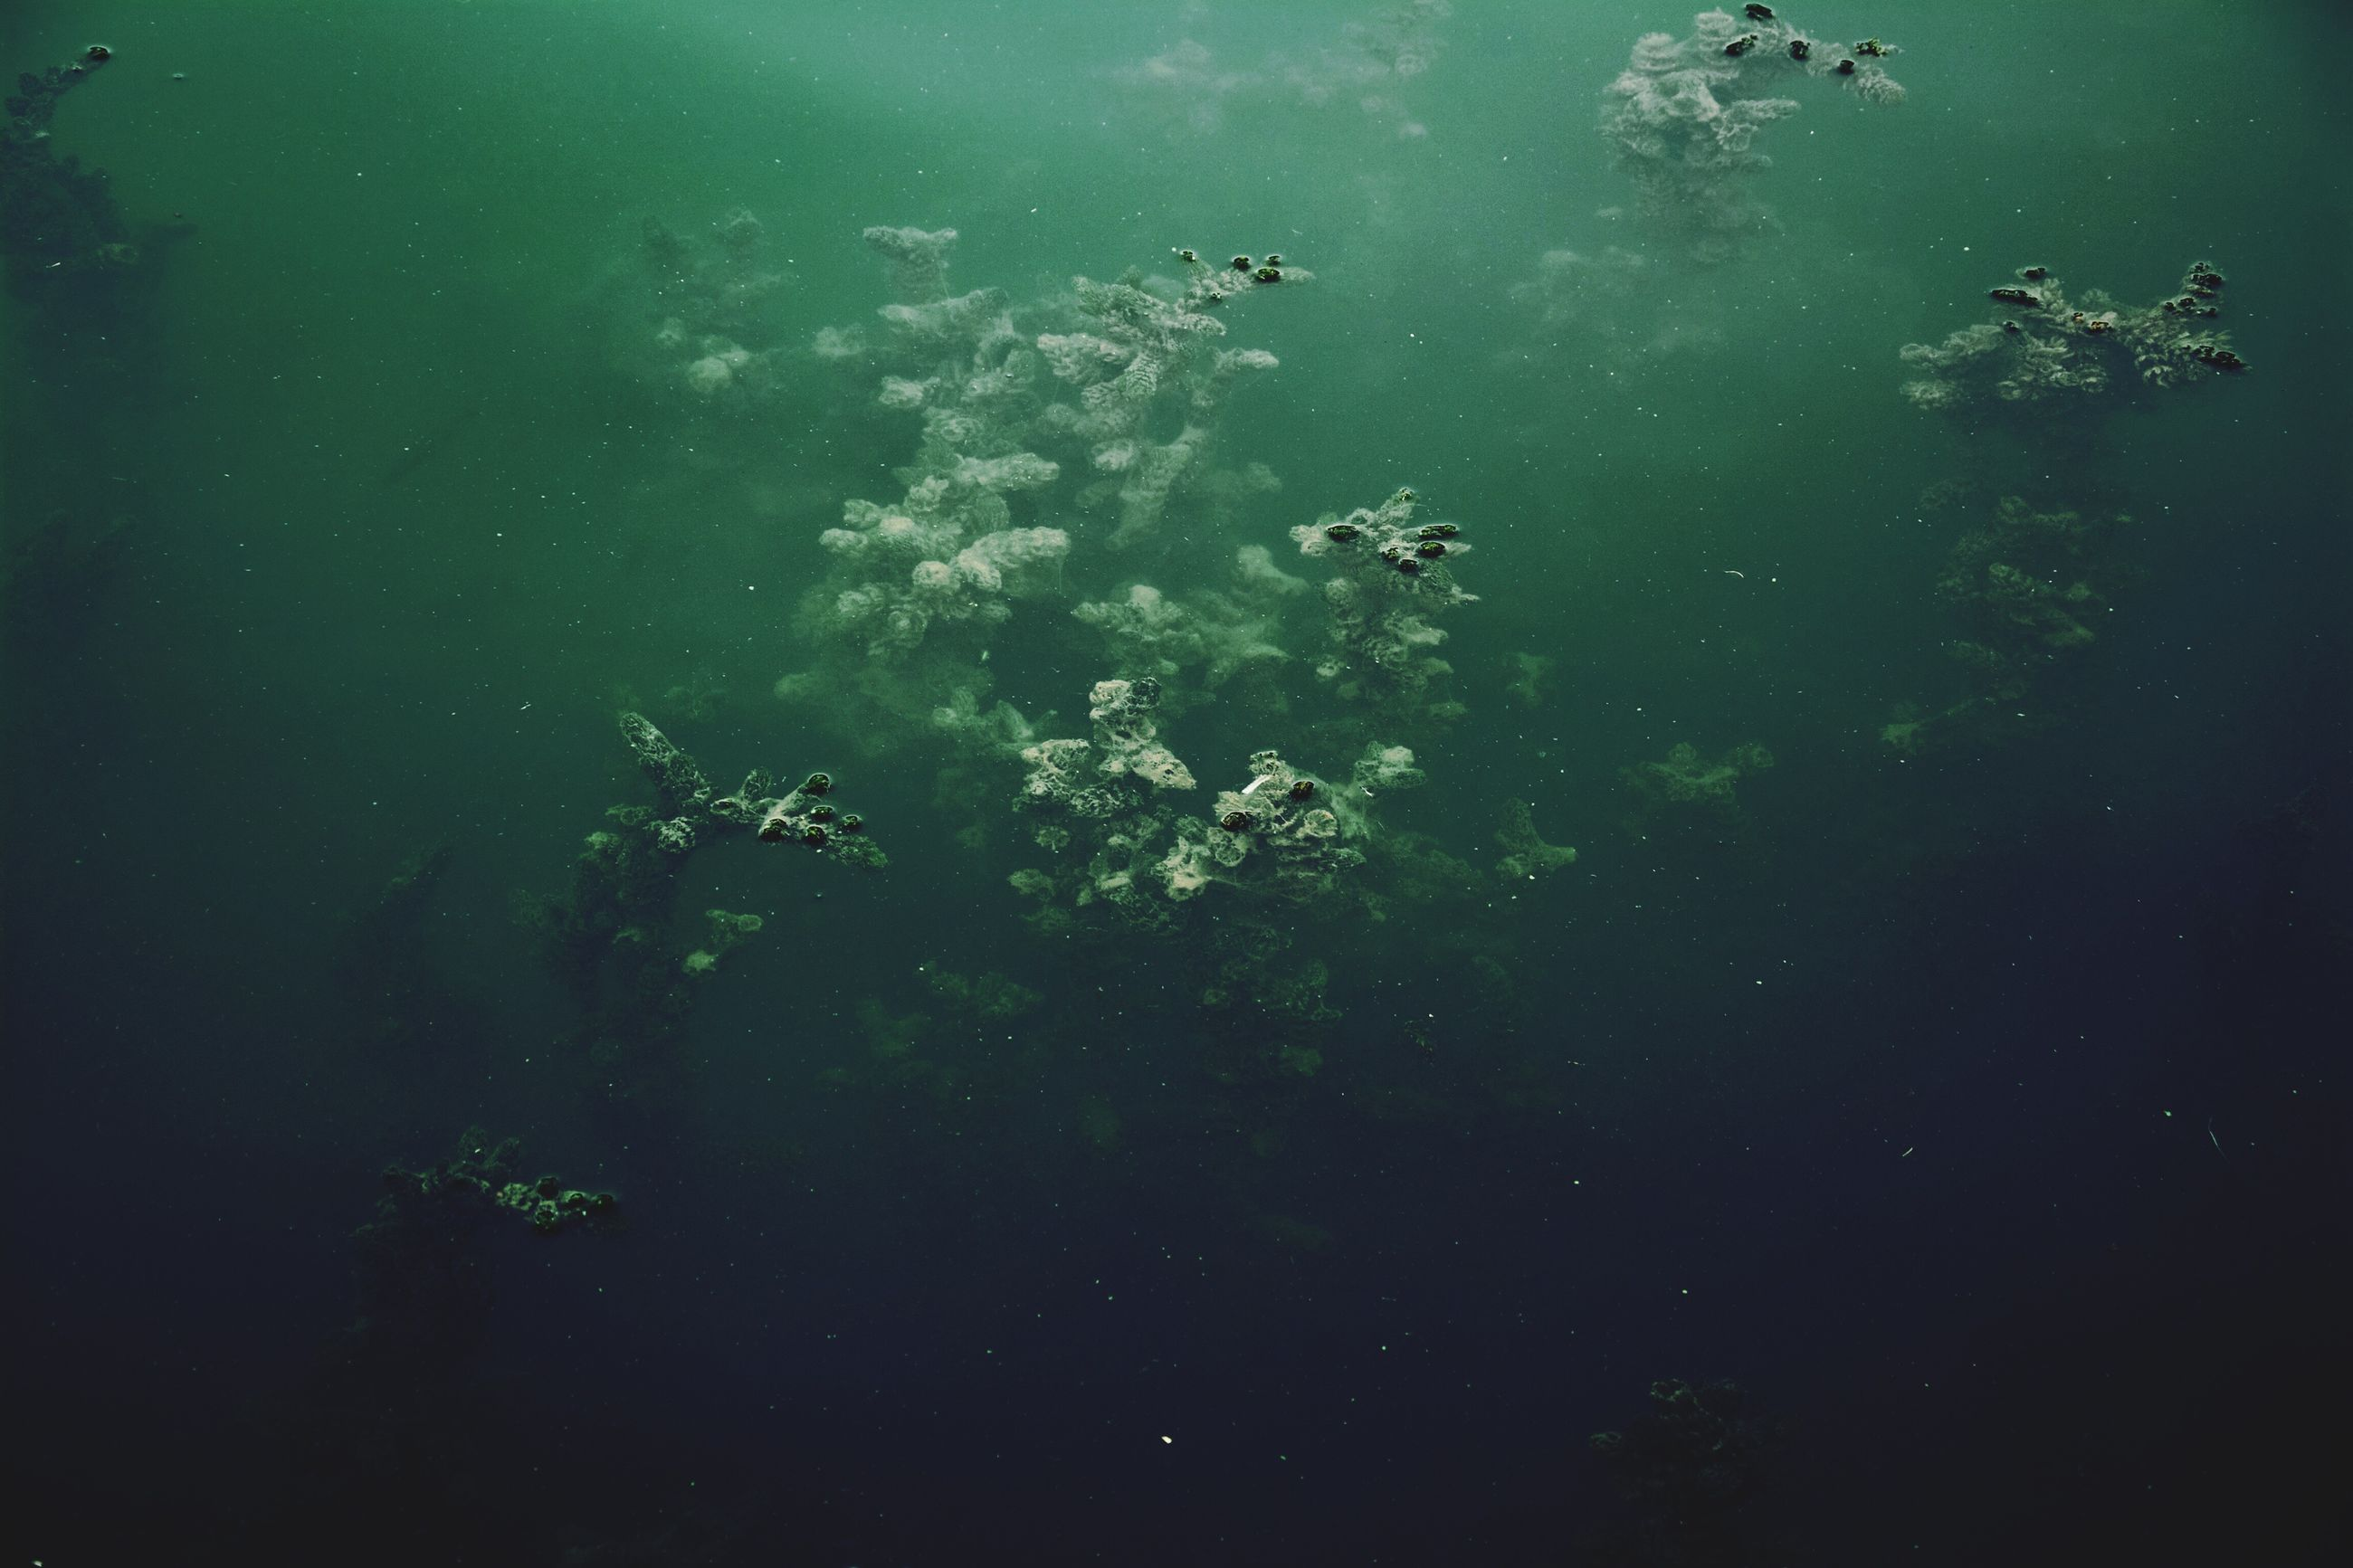 water, underwater, no people, nature, swimming, sea life, green color, beauty in nature, outdoors, undersea, day, close-up